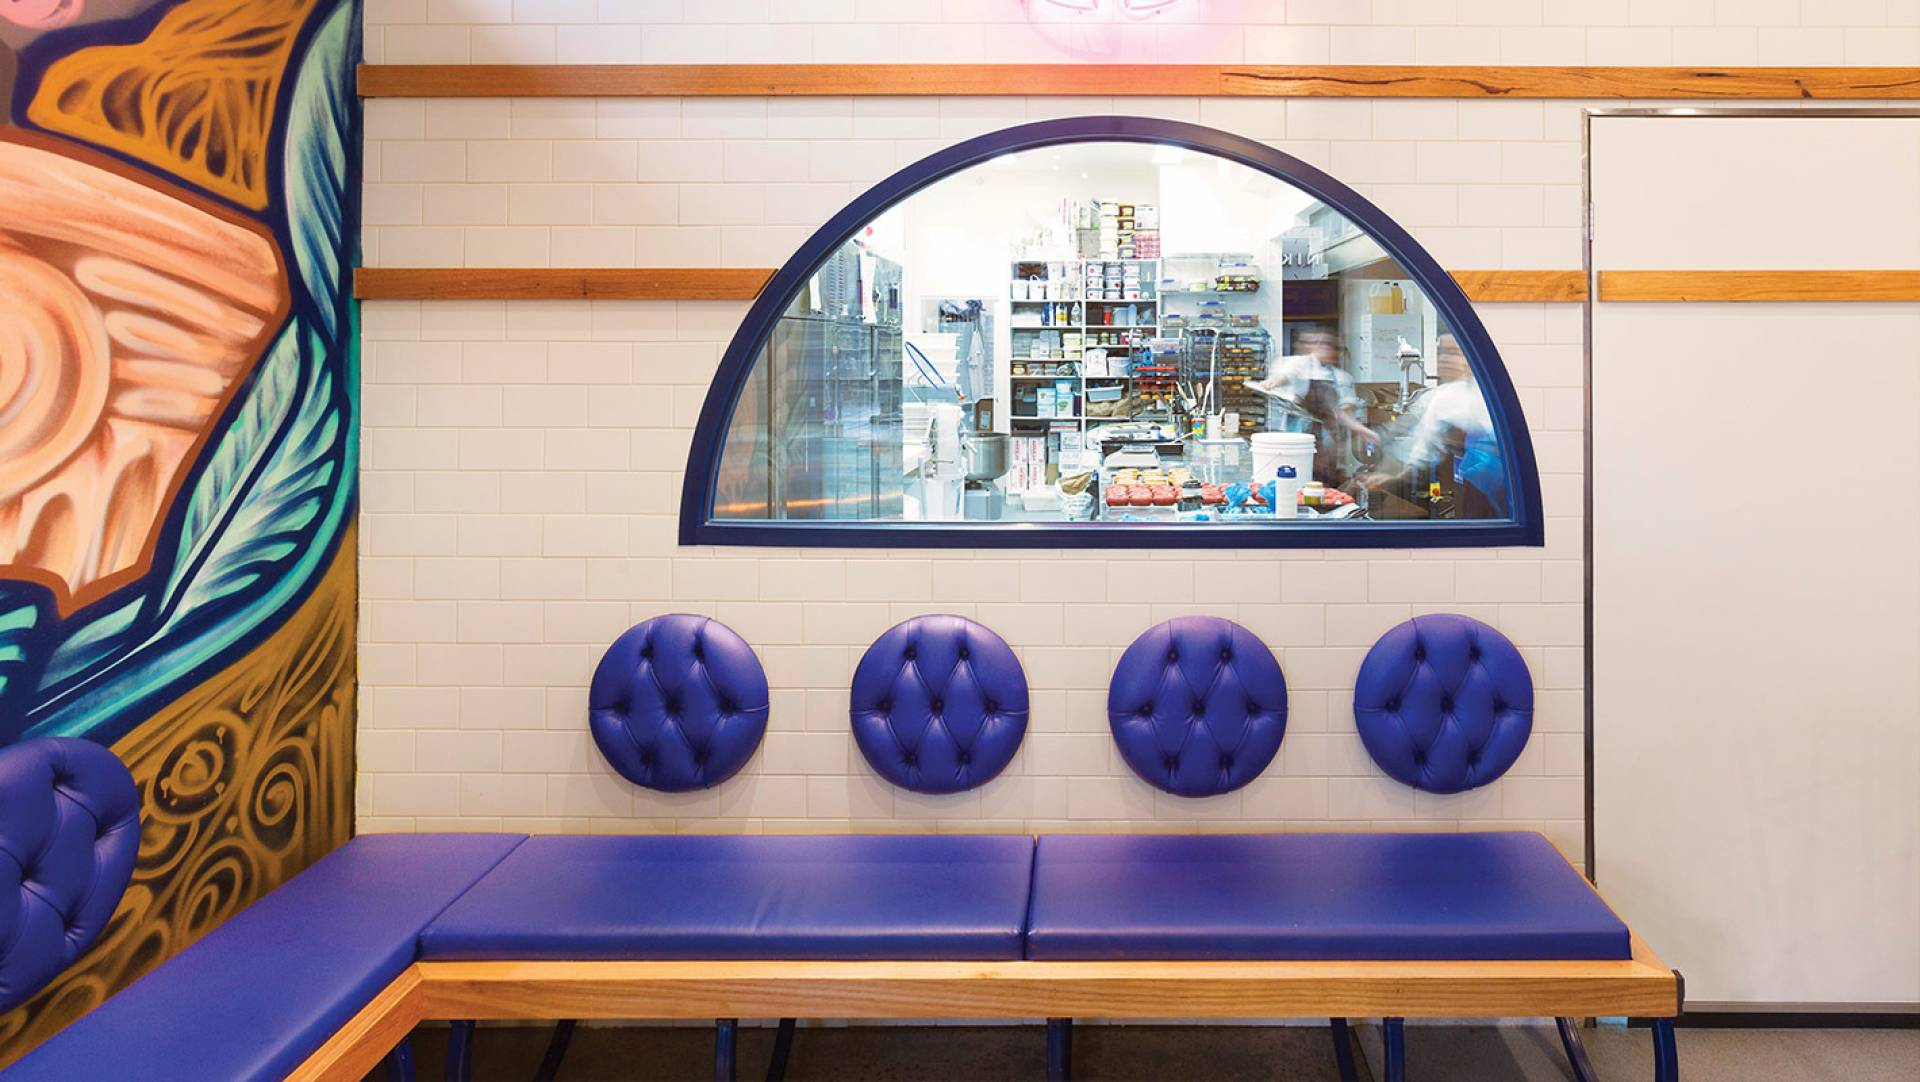 Doughnut & Cafe Design Melbourne-Oakleigh Doughnut Co TODCO Designer: Custom Furniture